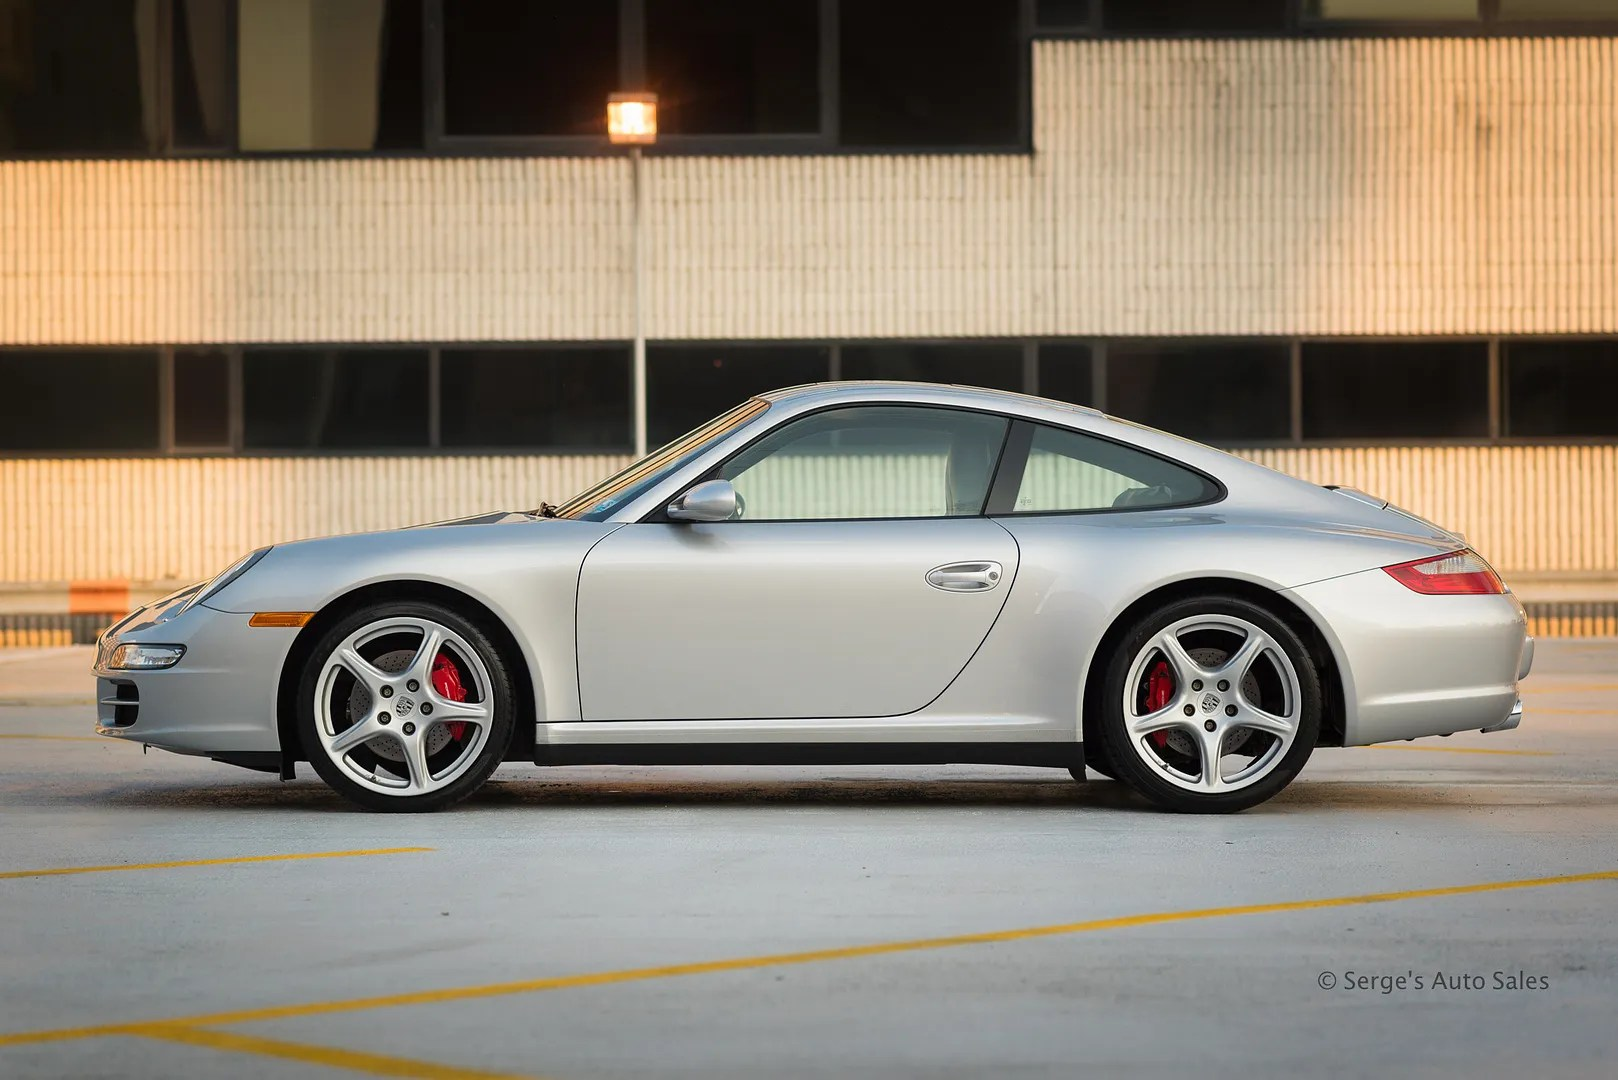 photo Serges-auto-sales-porsche-911-for-sale-scranton-pennsylvania-3_zpstrk5no9q.jpg